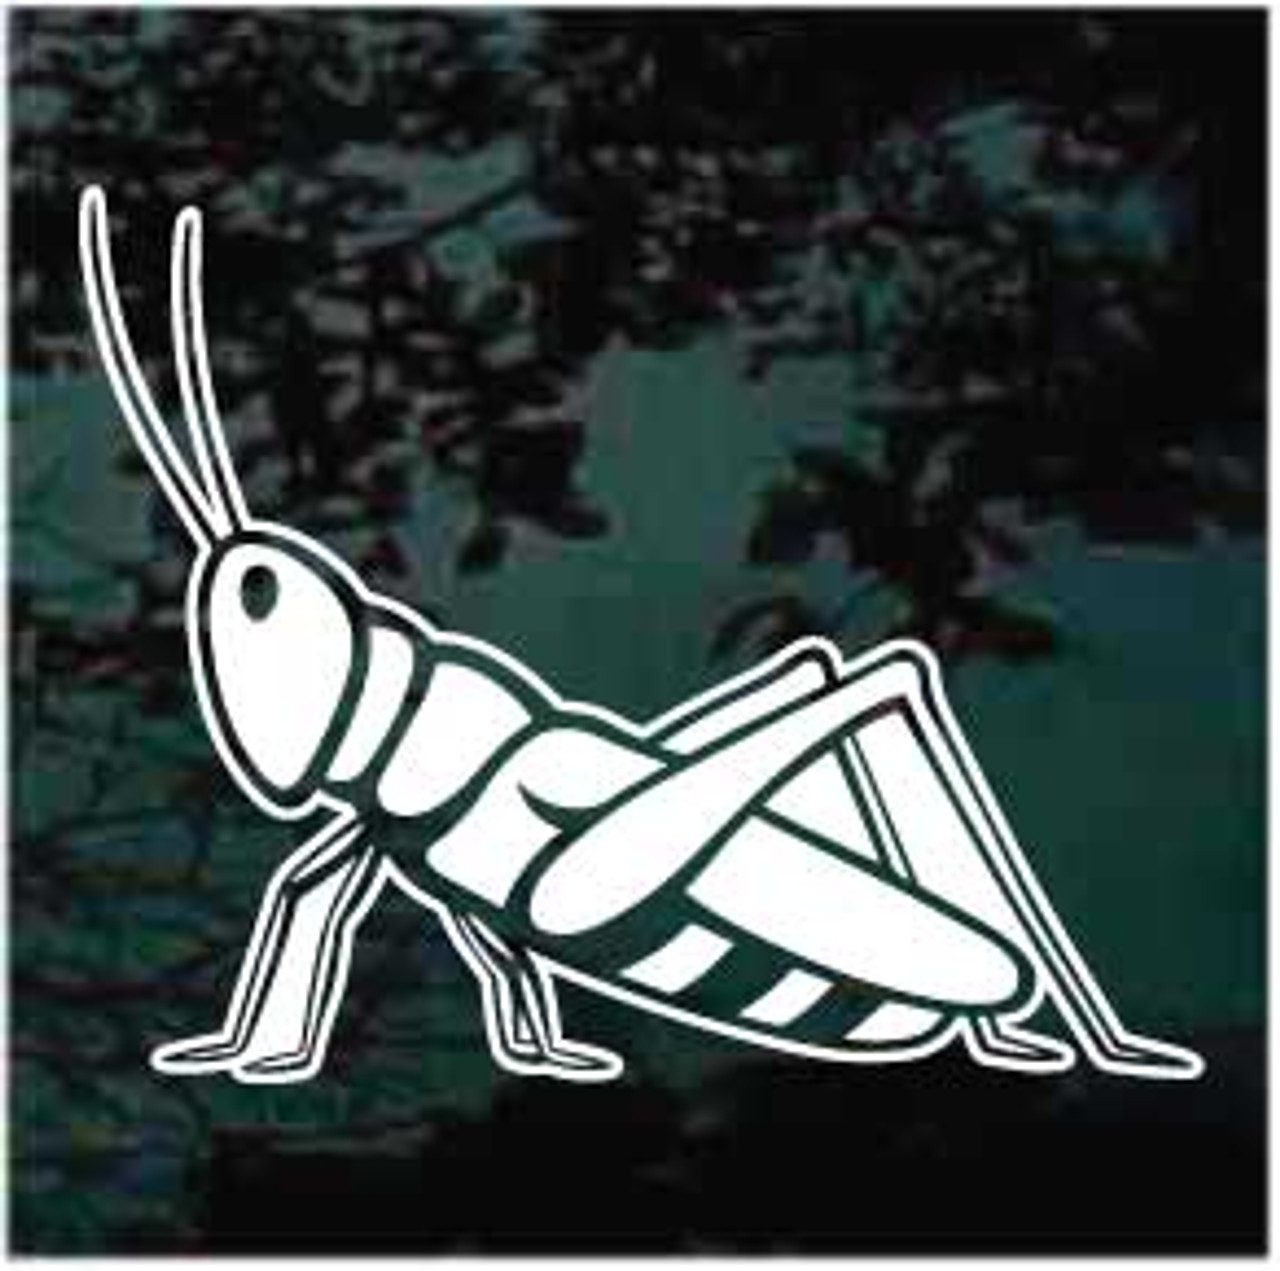 Grasshopper Window Decal 01